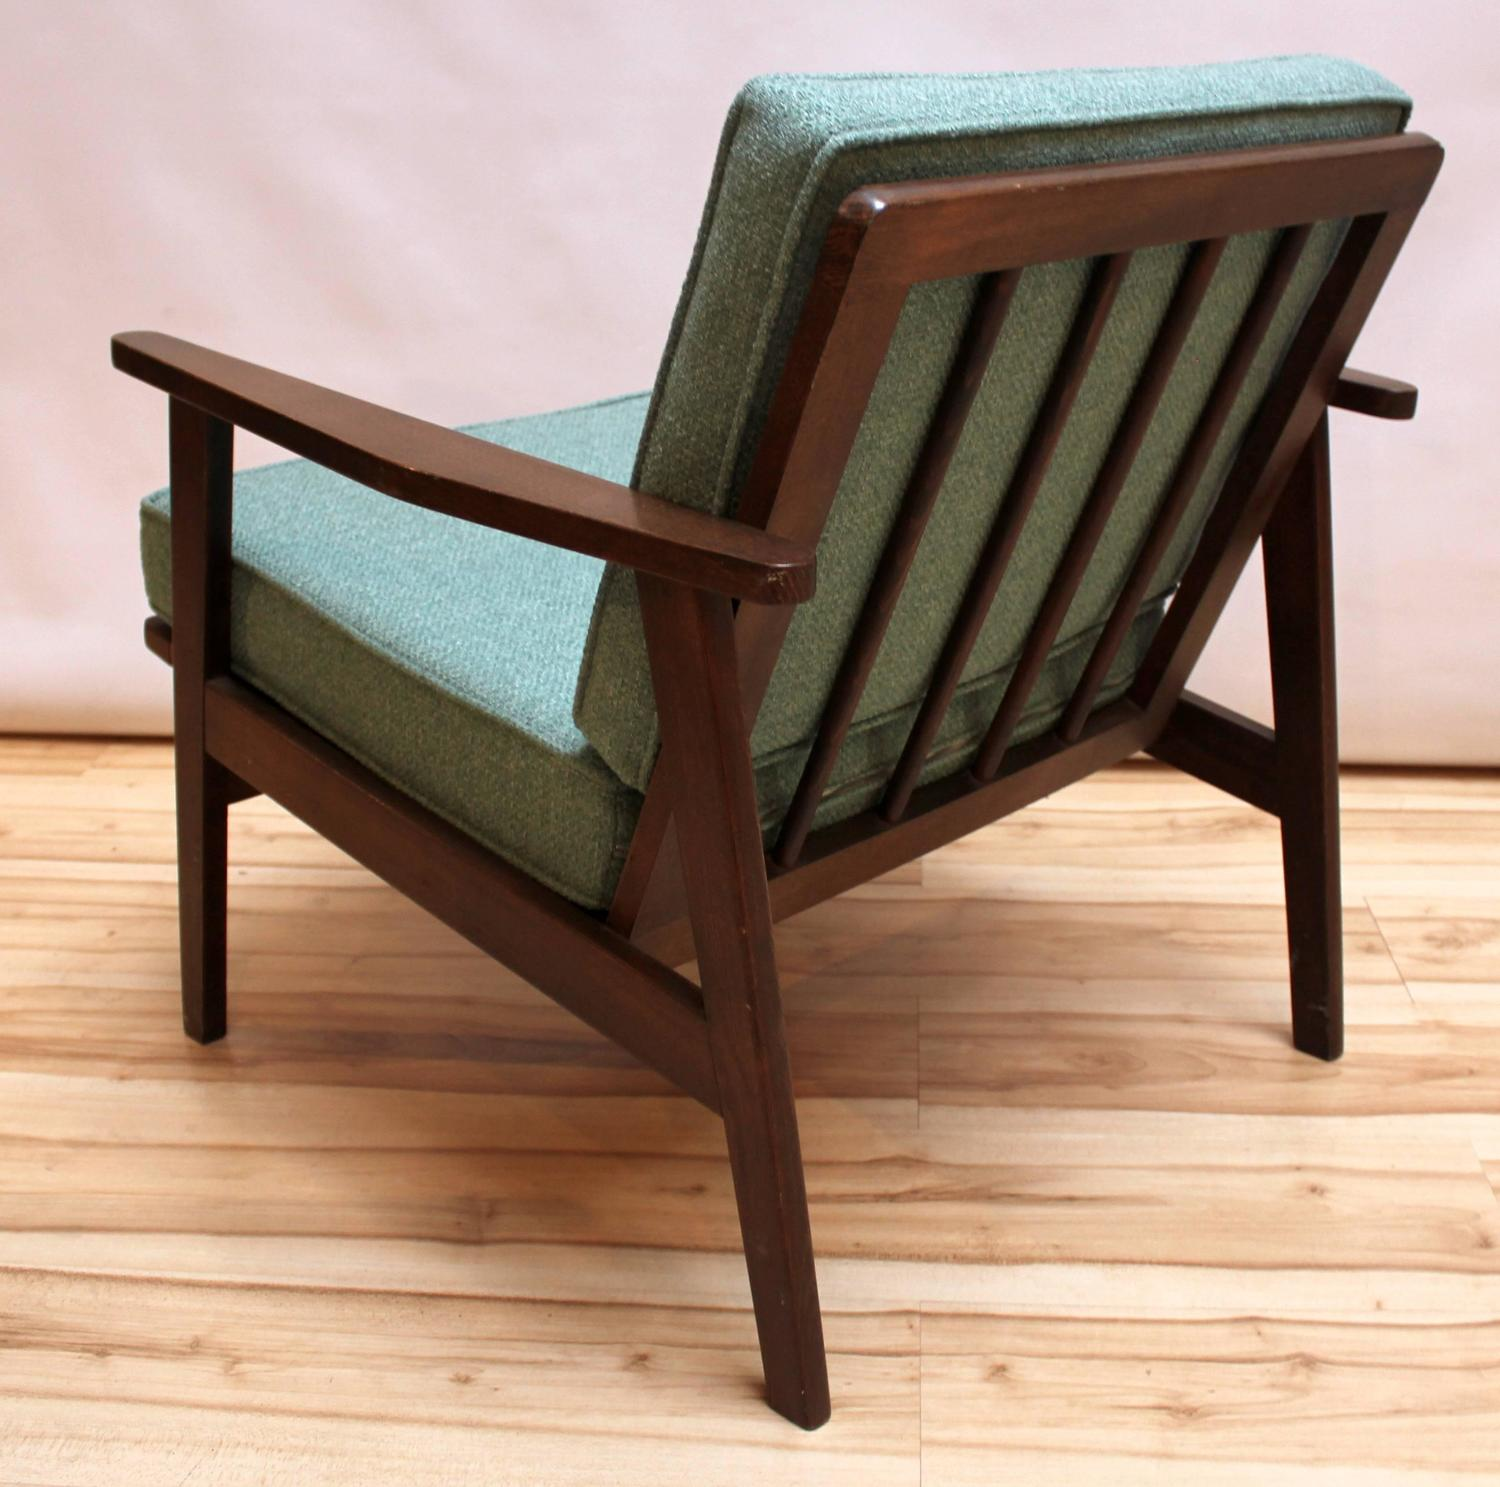 Mid Century Modern Chair 1950s California: Pair Of 1950s Japanese Mid-Century Modern Upholstered